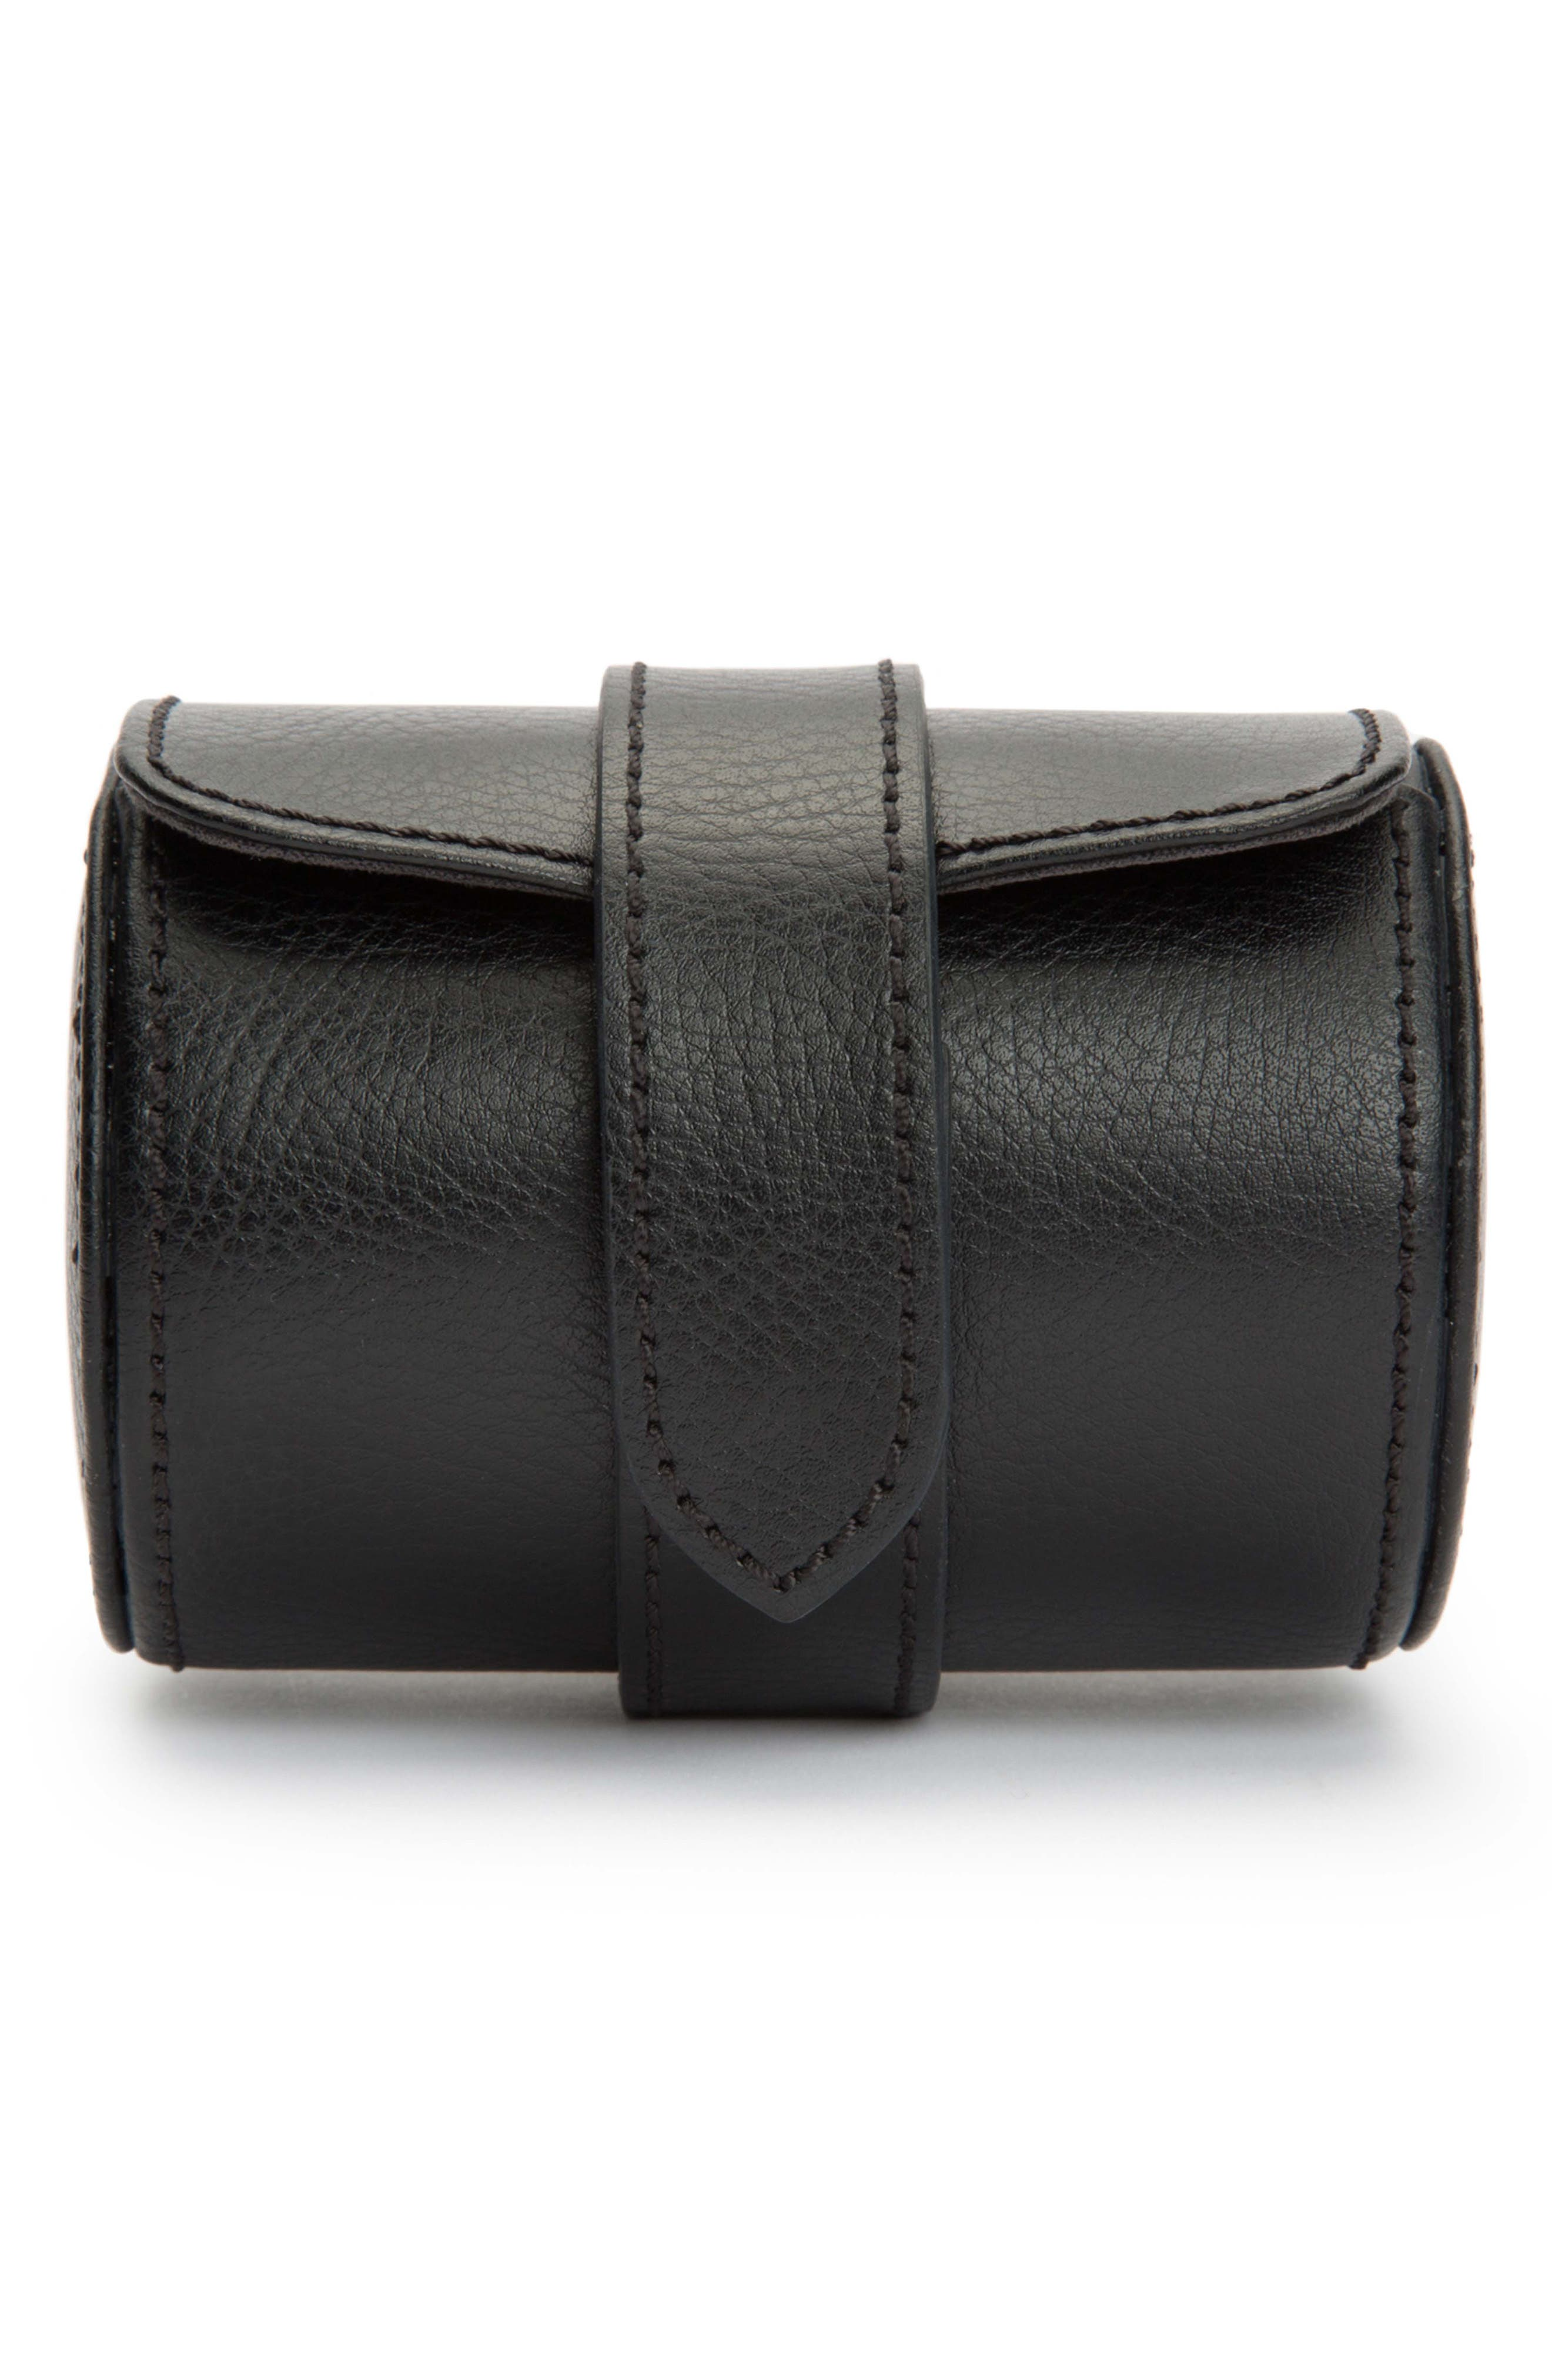 Blake Leather Watch Roll,                             Main thumbnail 1, color,                             BLACK